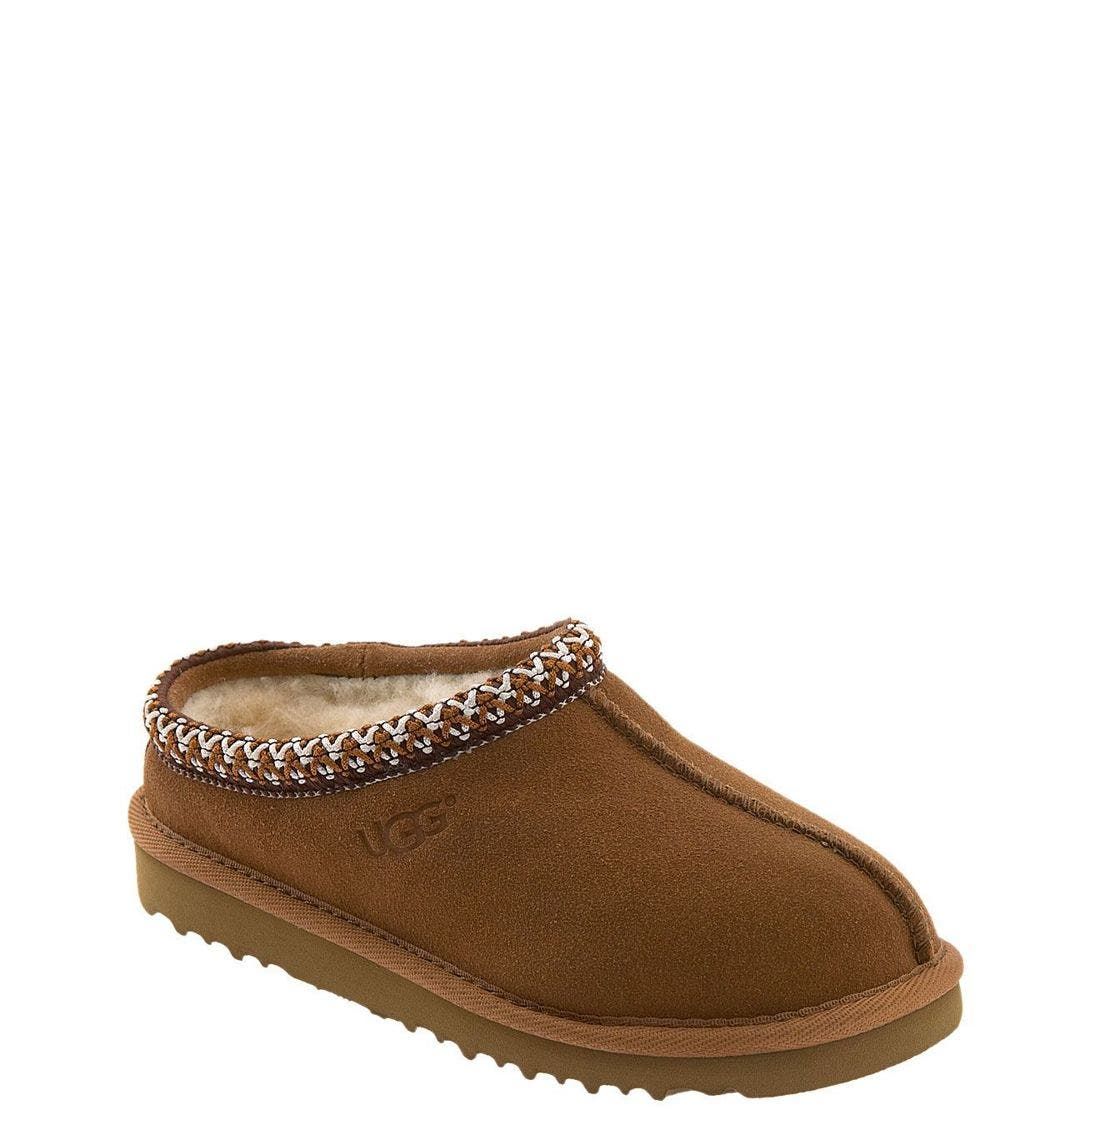 Alternate Image 1 Selected - UGG® Tasman Slipper (Toddler, Little Kid & Big Kid)